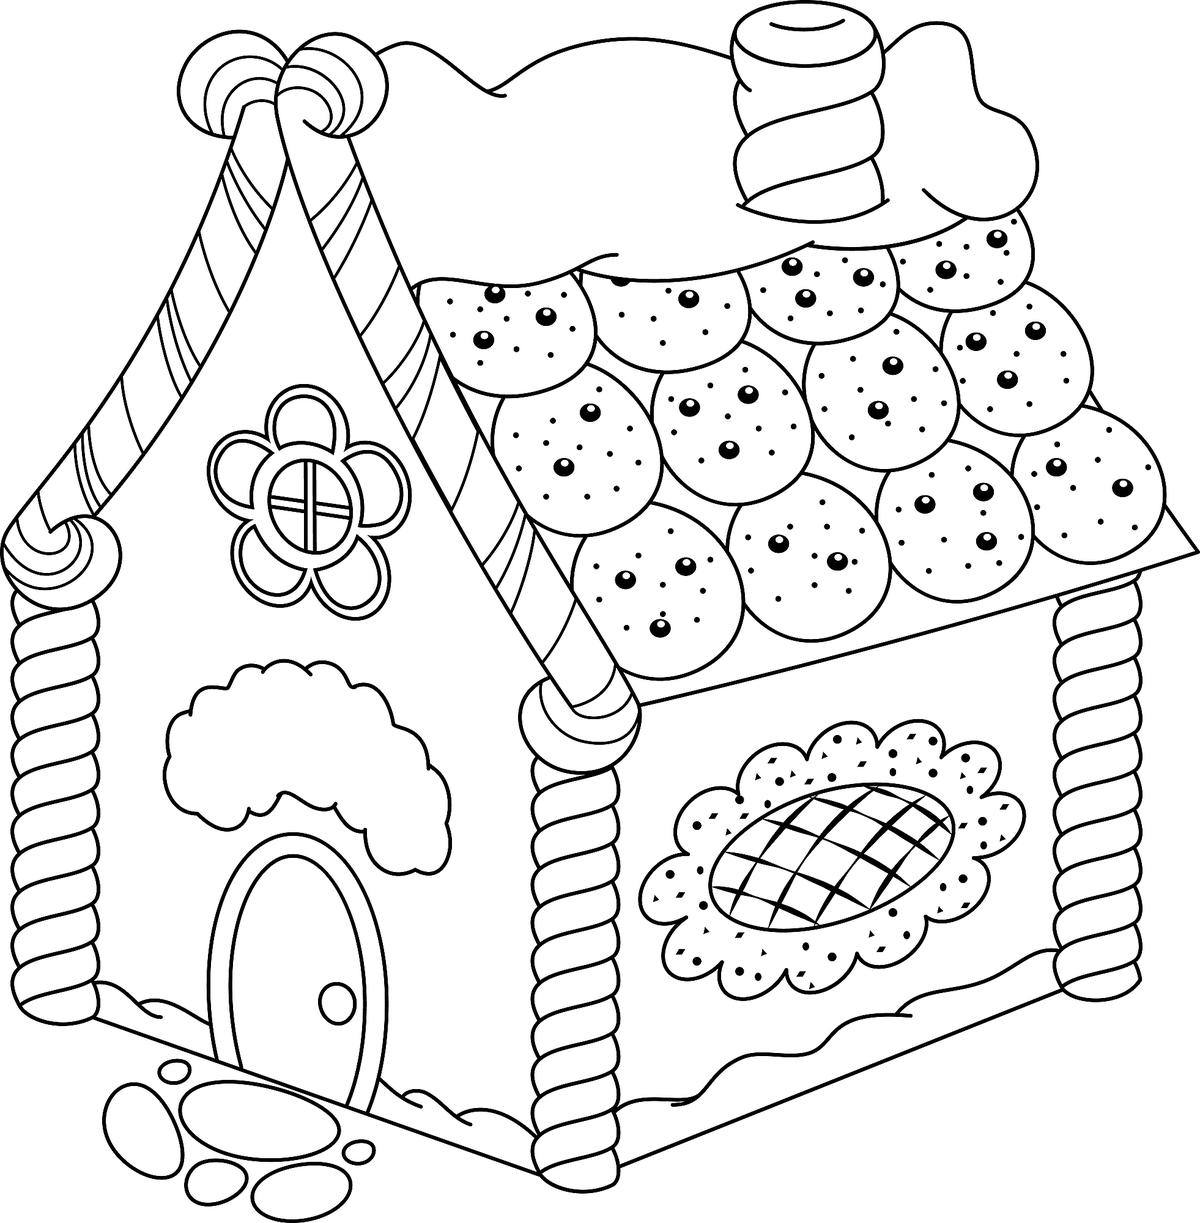 gingerbread house coloring page printable gingerbread house coloring pages for kids house gingerbread page coloring